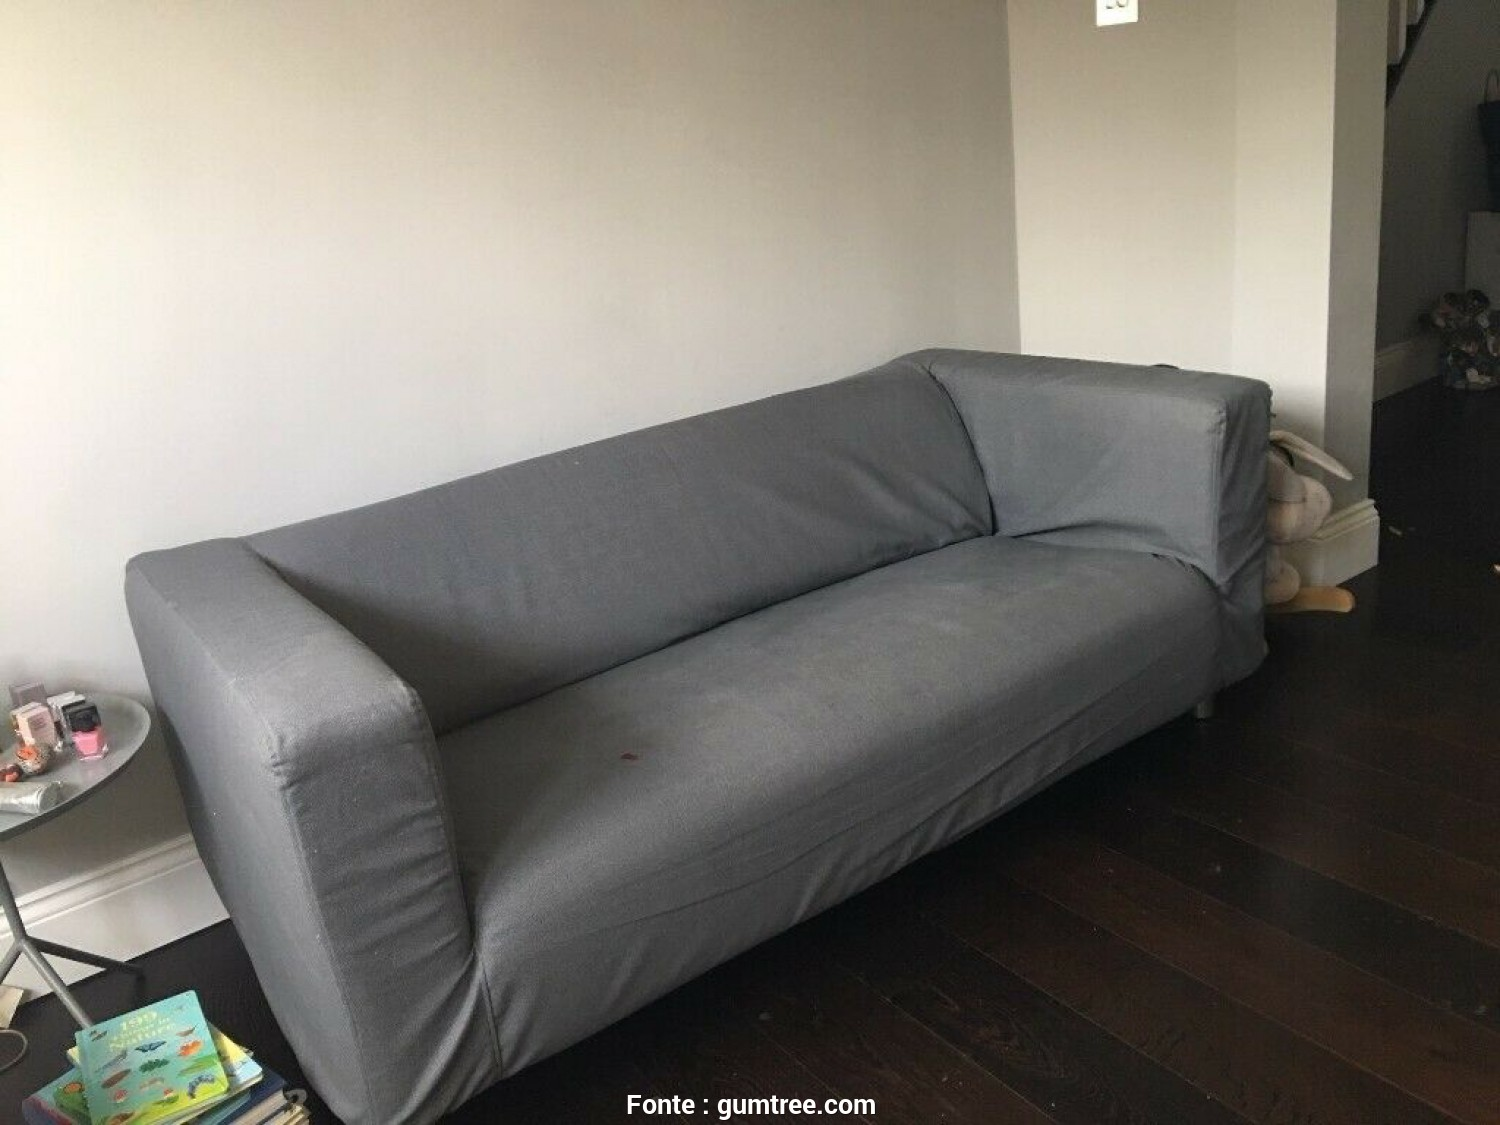 Klippan Ikea Manual, Bellissimo IKEA Klippan Sofa, Seater, Grey, Pinner HA5, In Harrow, London, Gumtree